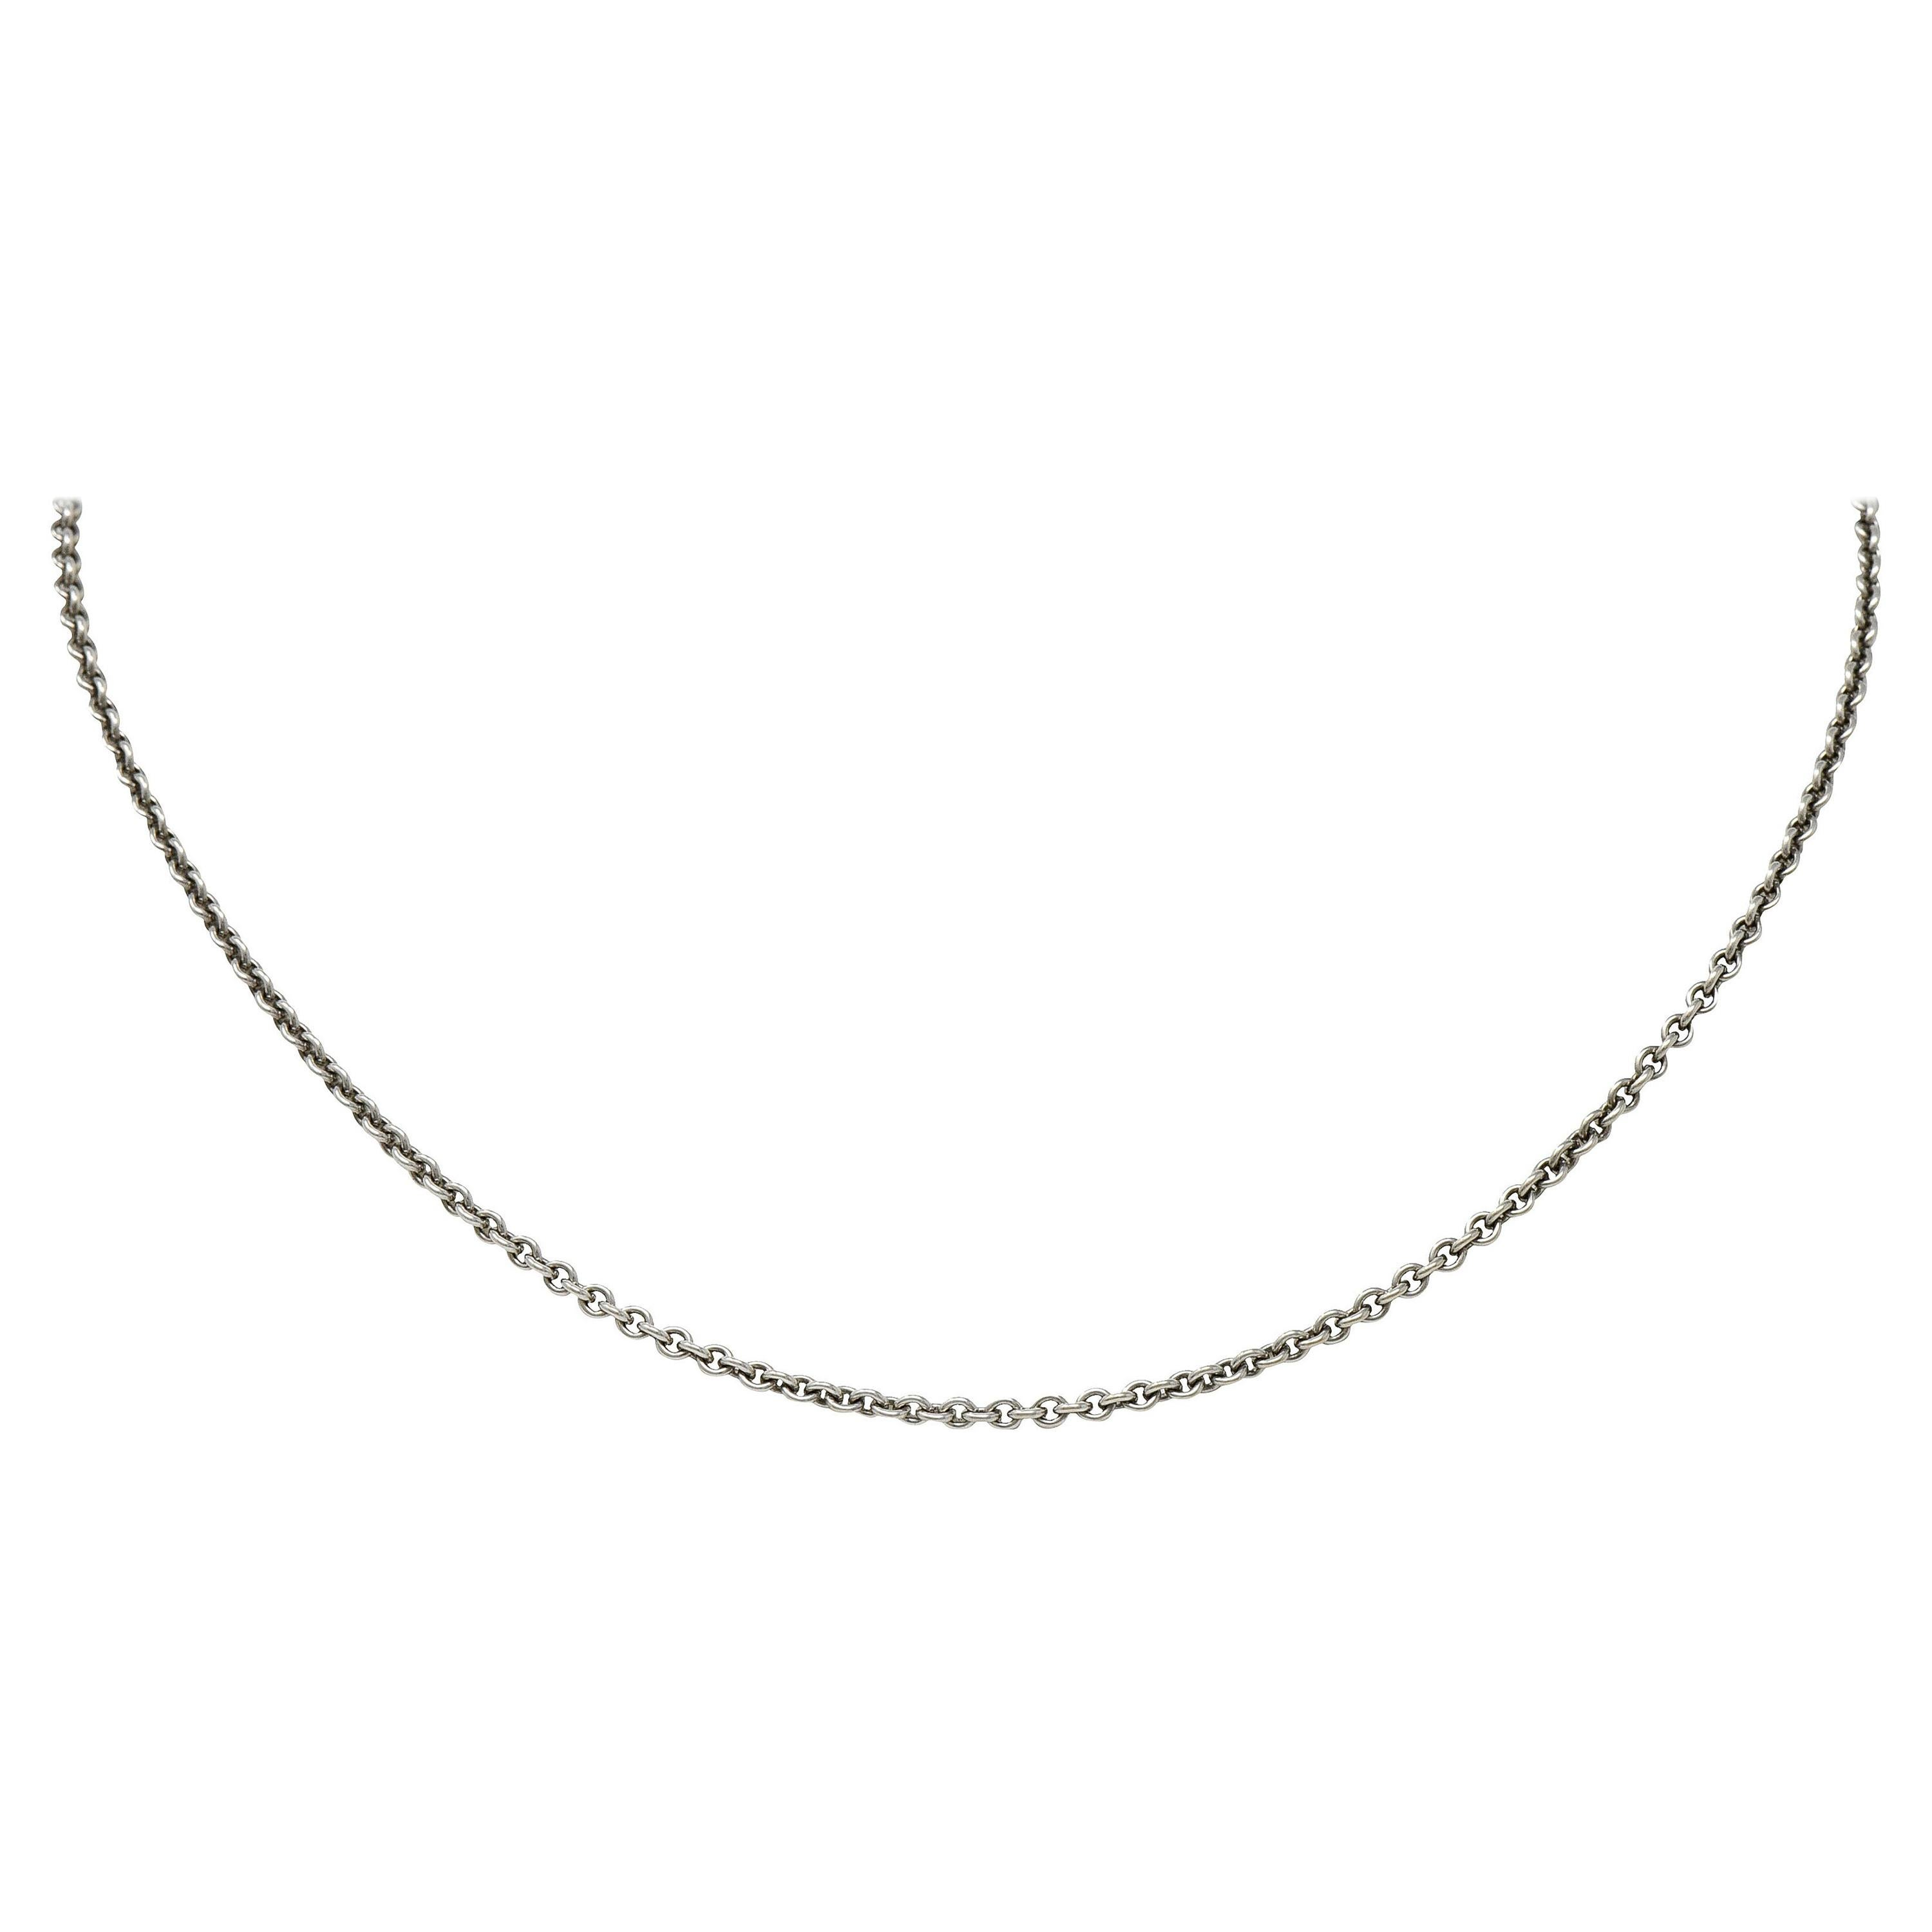 Cartier French 18 Karat White Gold Classic Cable Chain Necklace